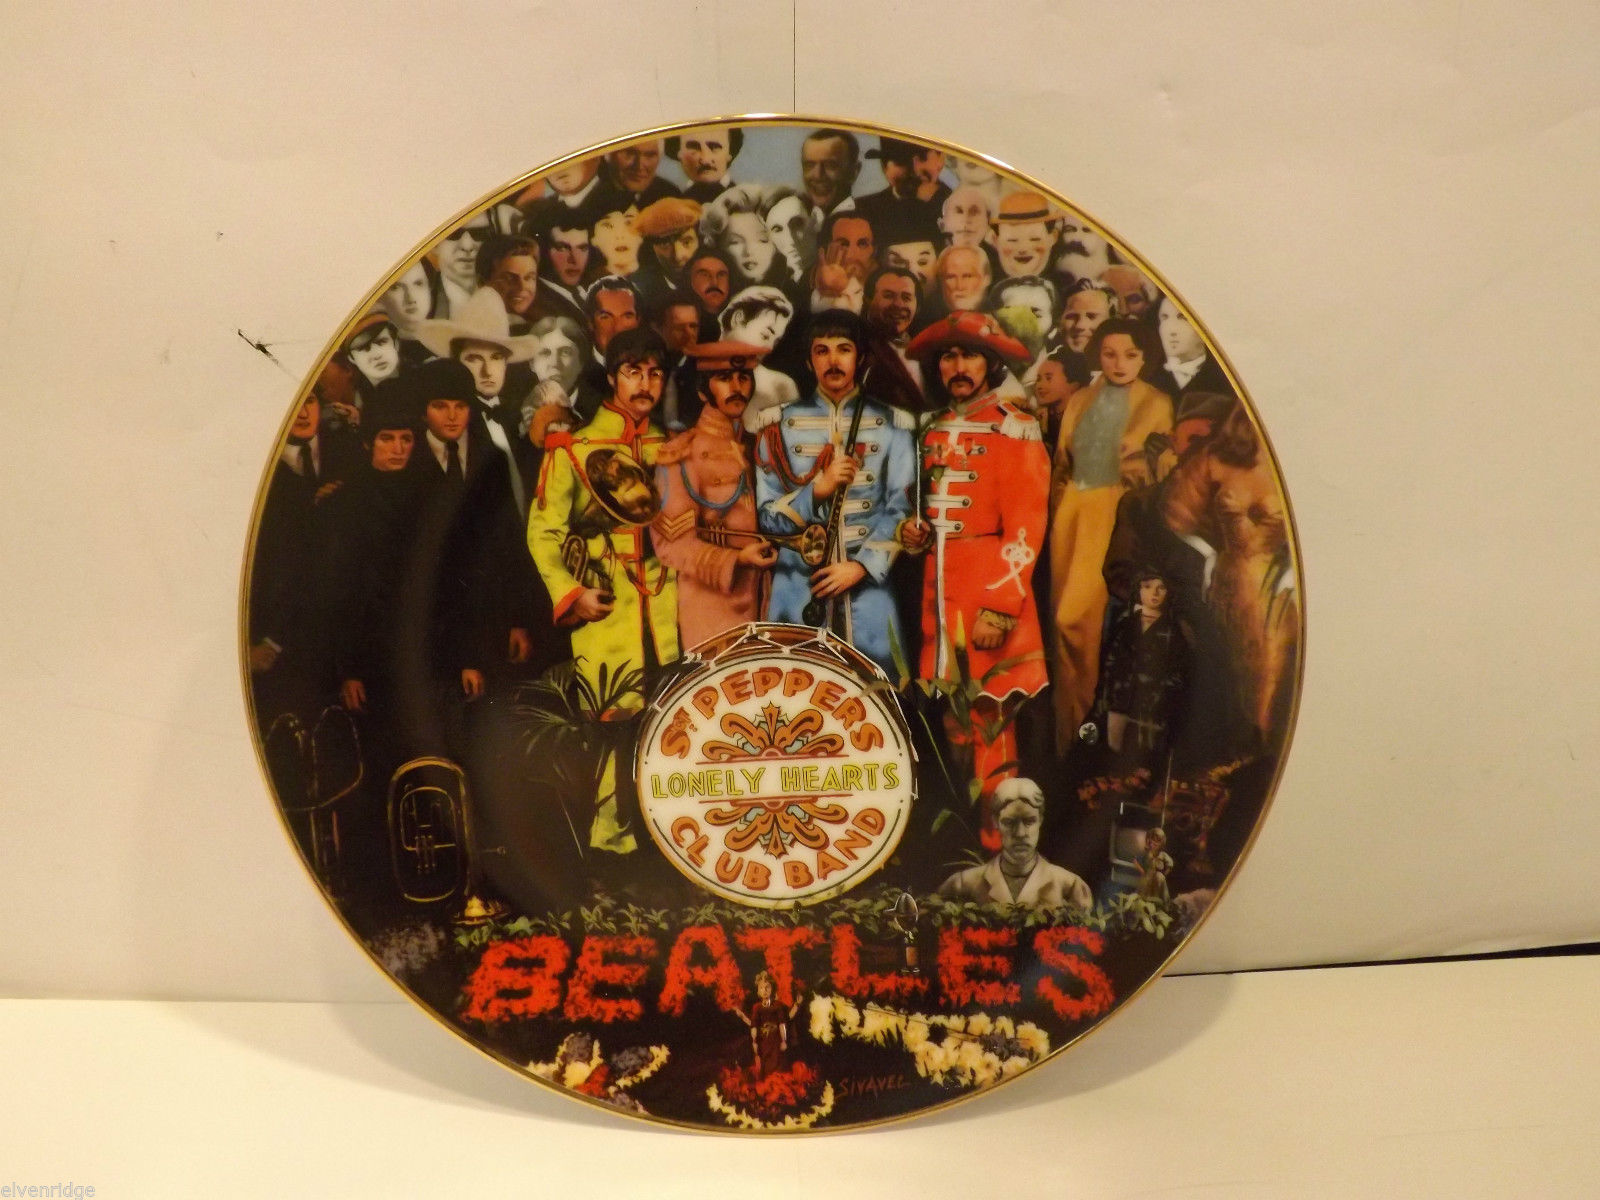 Mint Delphi Beatles Plate Sgt. Pepper 25th Anniversary Apple Corps collection